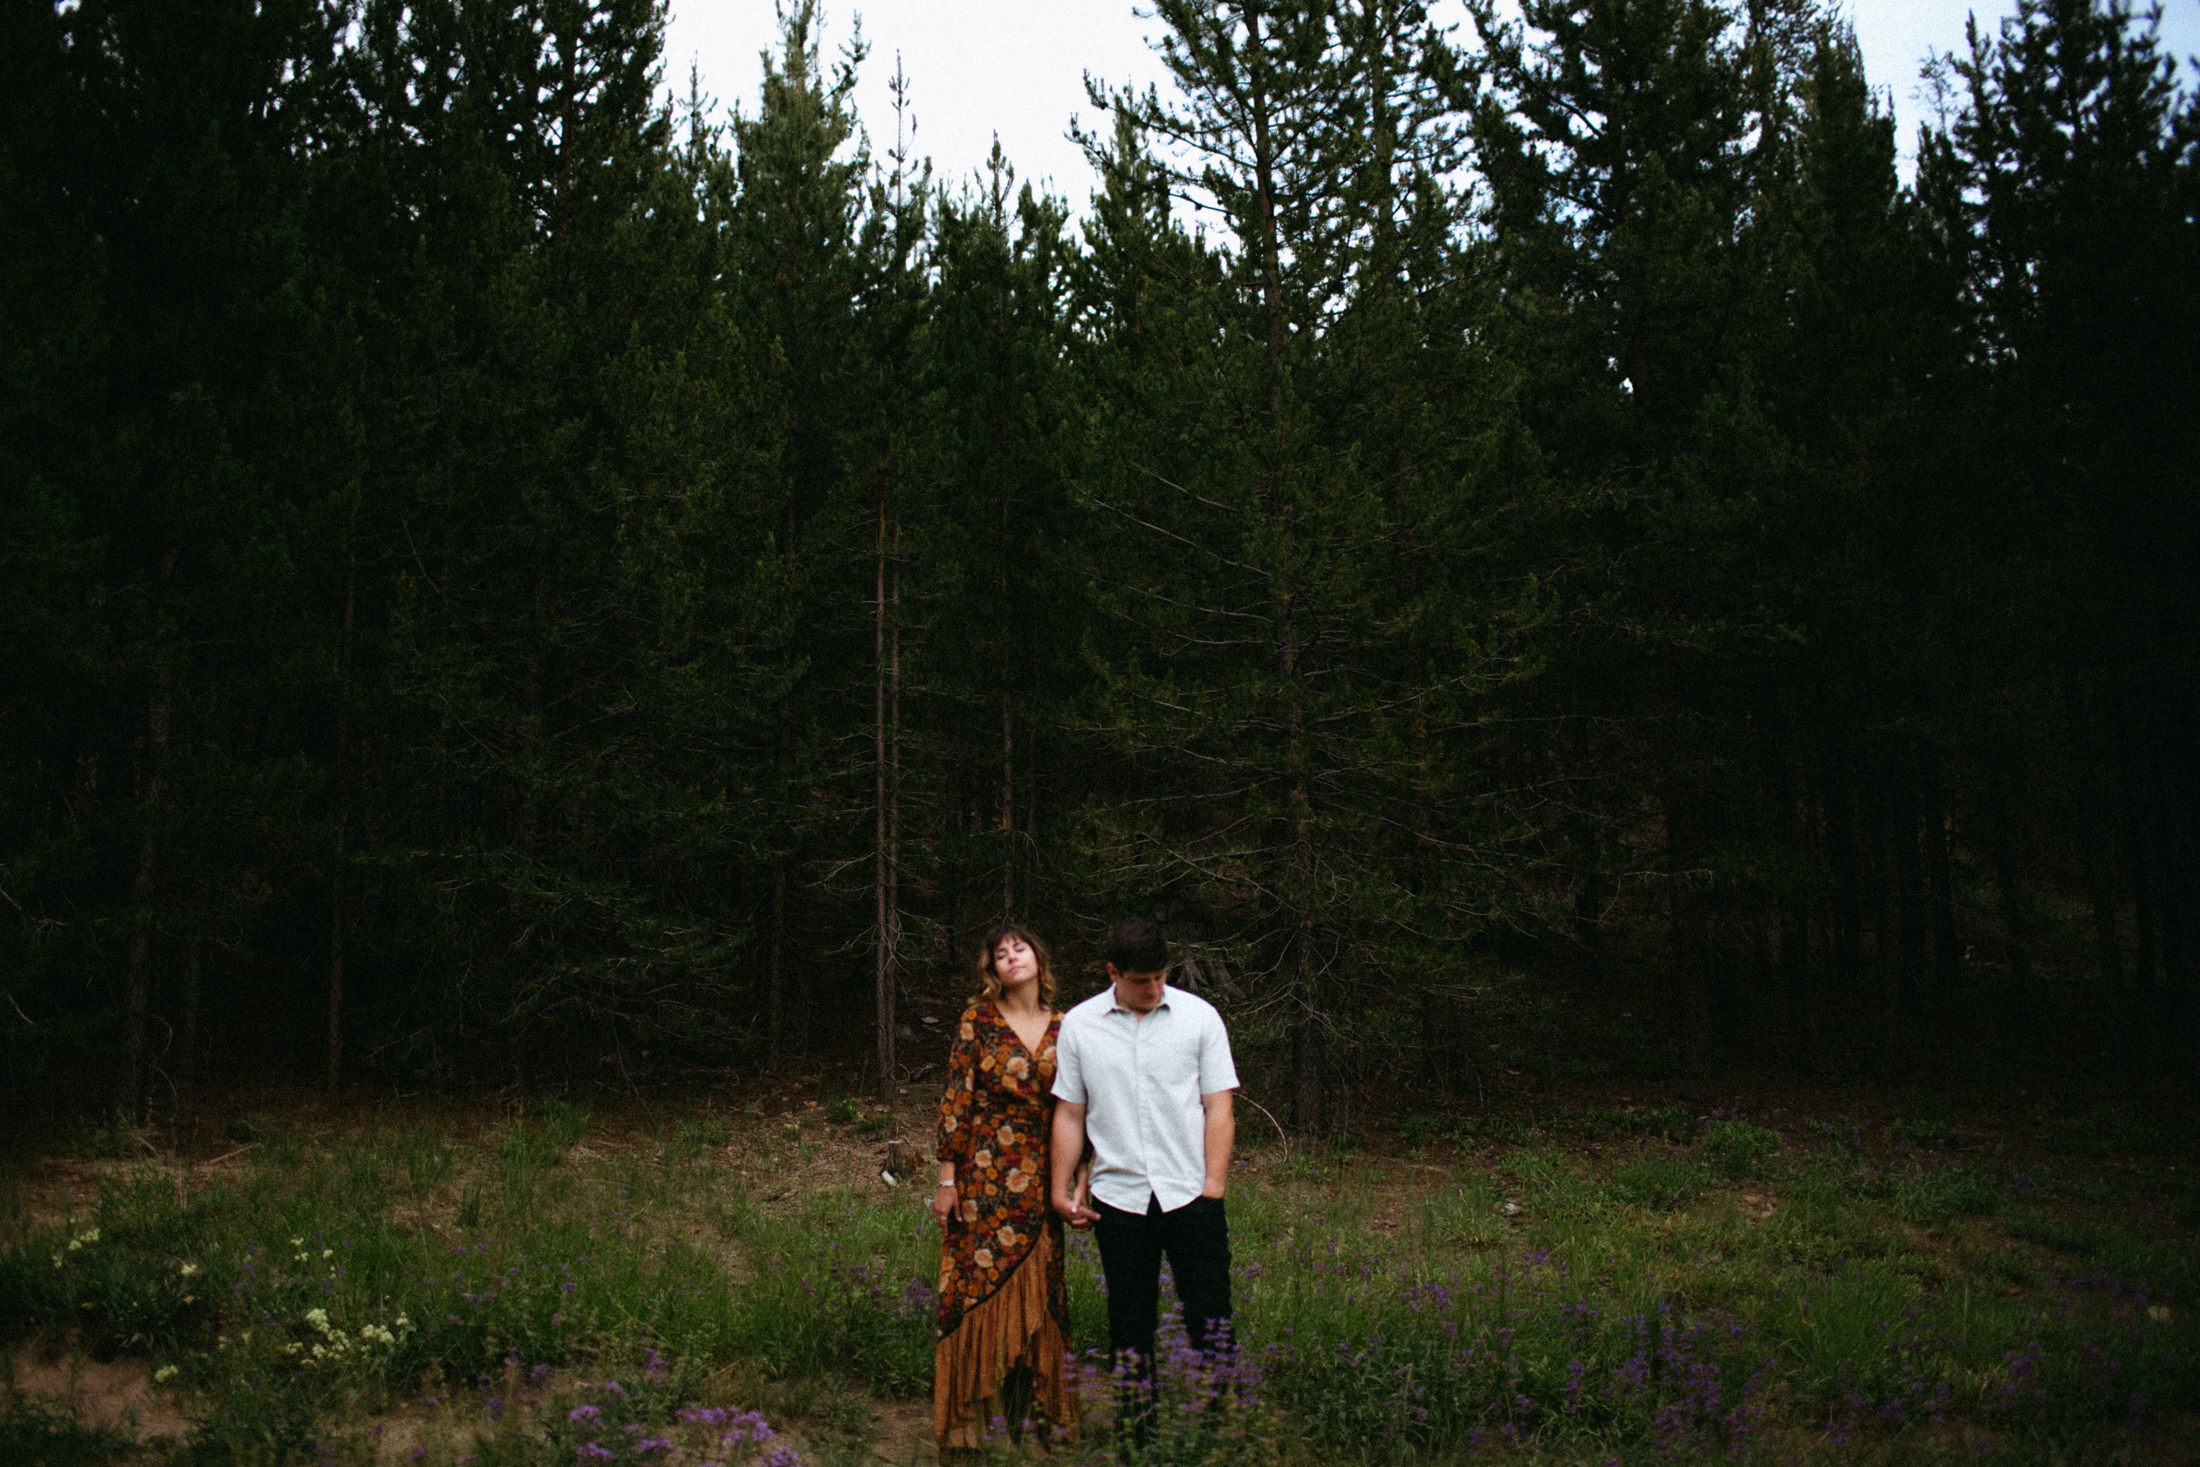 galena-engagement-session-christinemarie-28.jpg